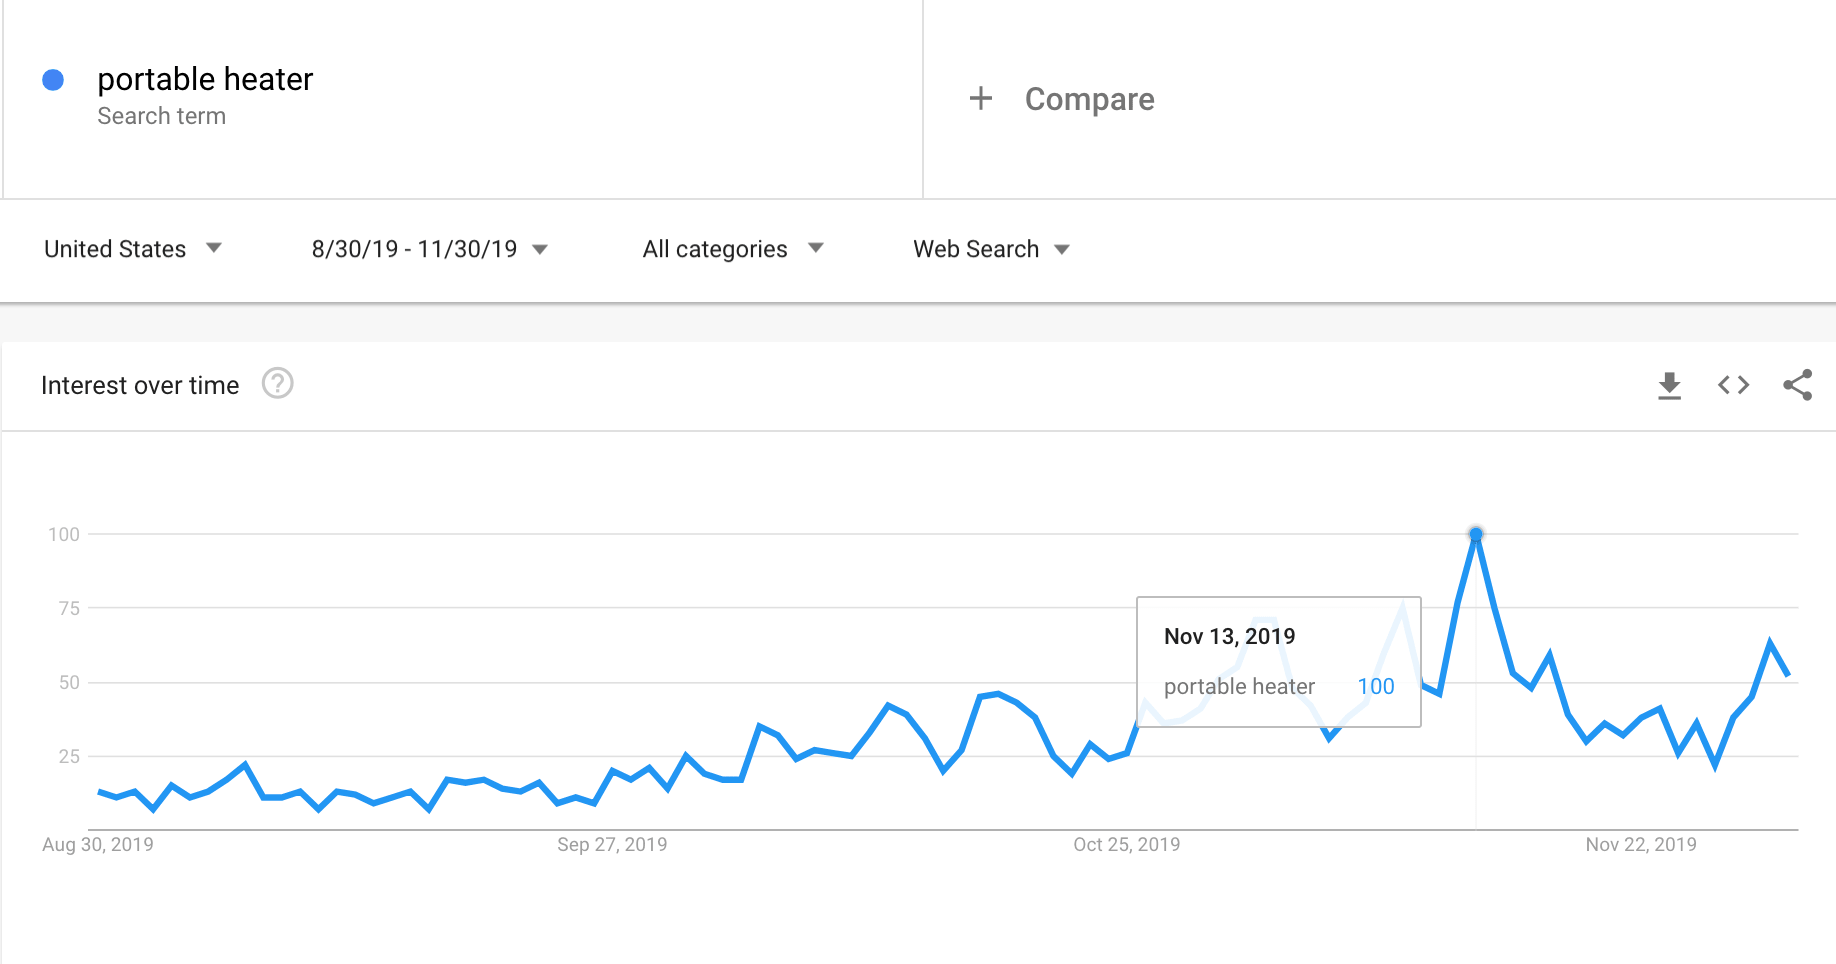 Google Trends graph showing the interest in portable heaters